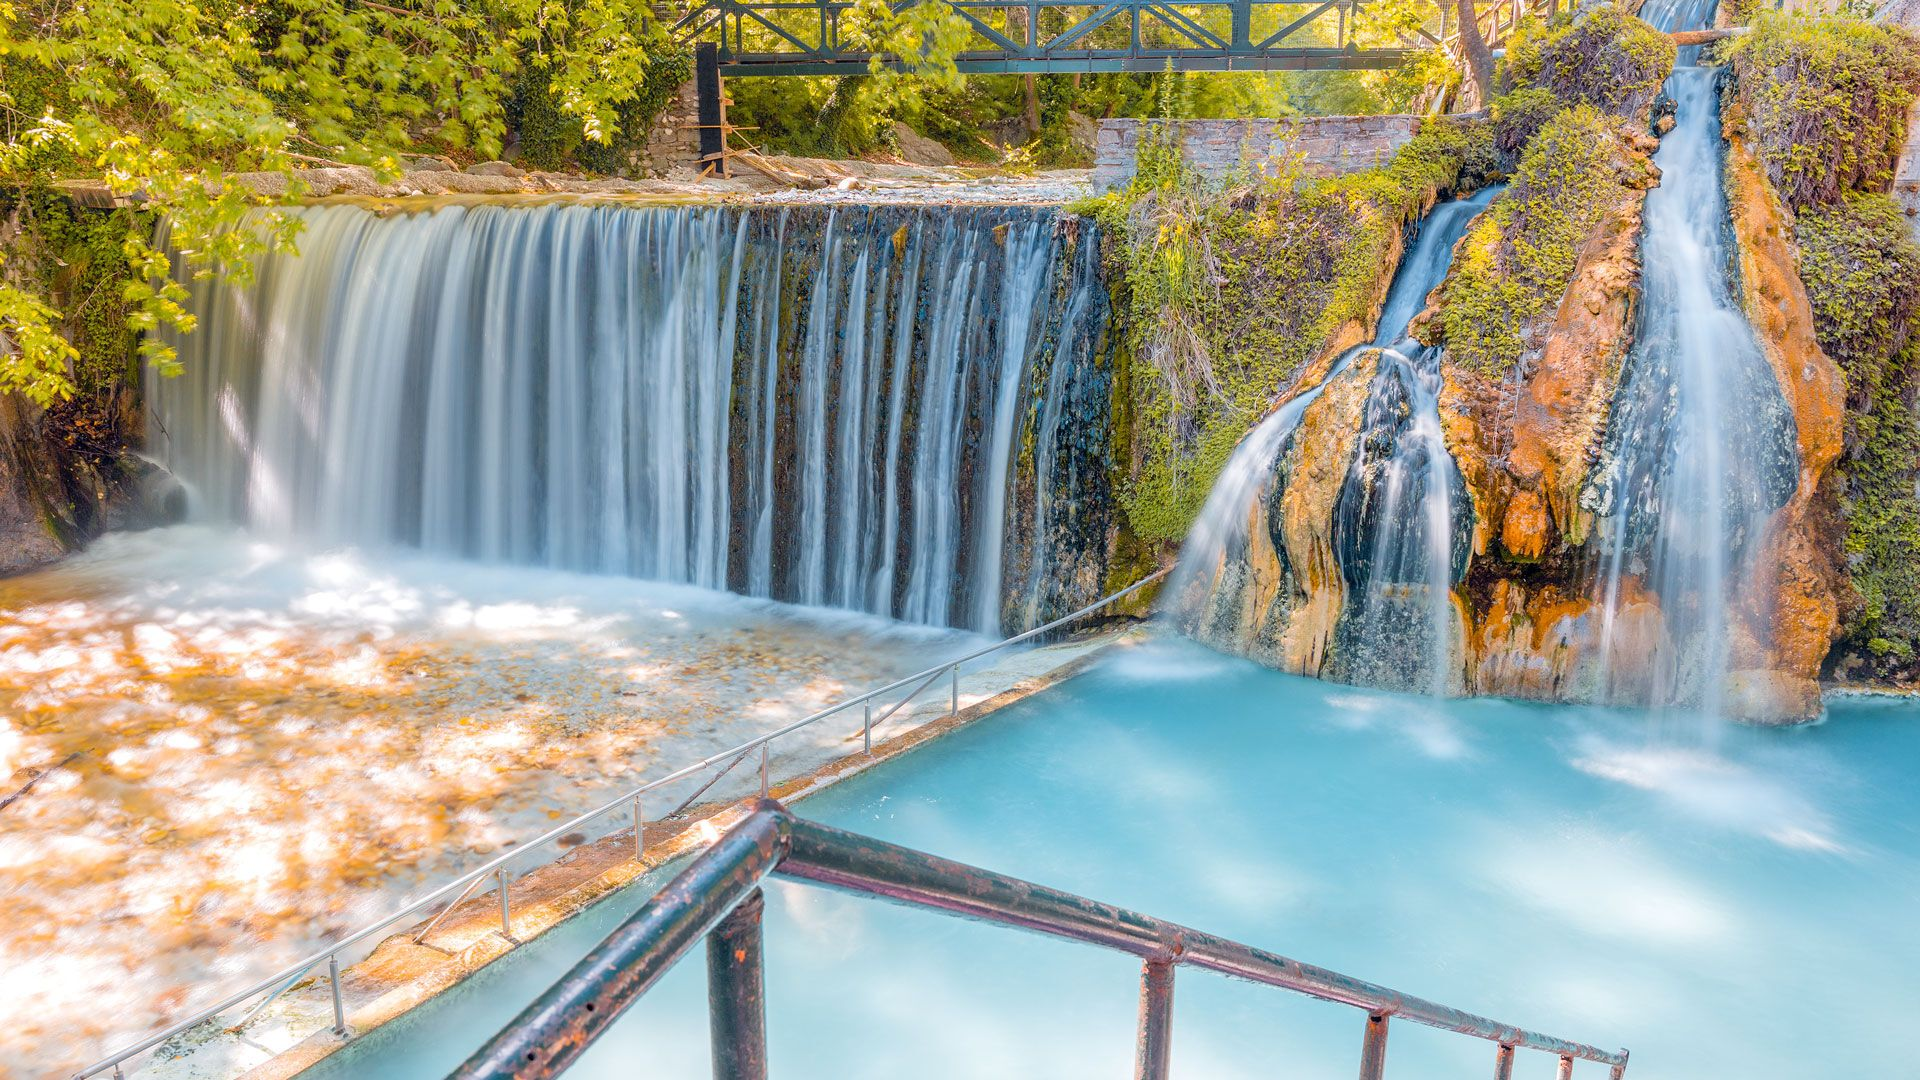 Seize the moment for a complete revitalization at the natural spas of Pozar-Loutraki Thermal Springs